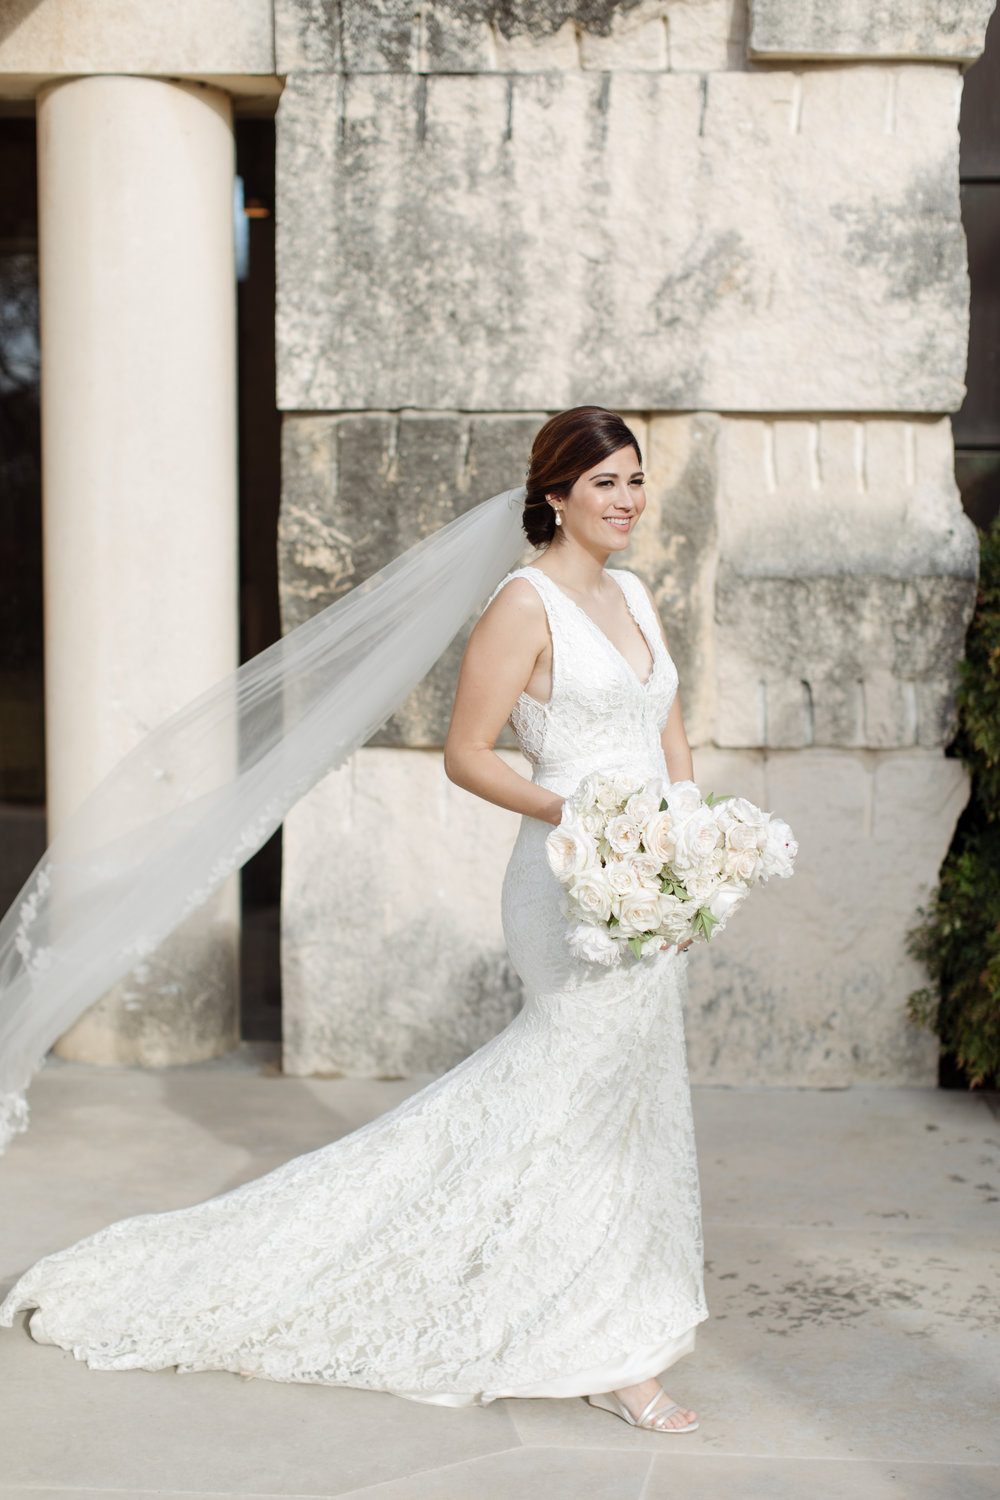 Bride Details - Dallas, Tx - Fall Wedding - Julian Leaver Events